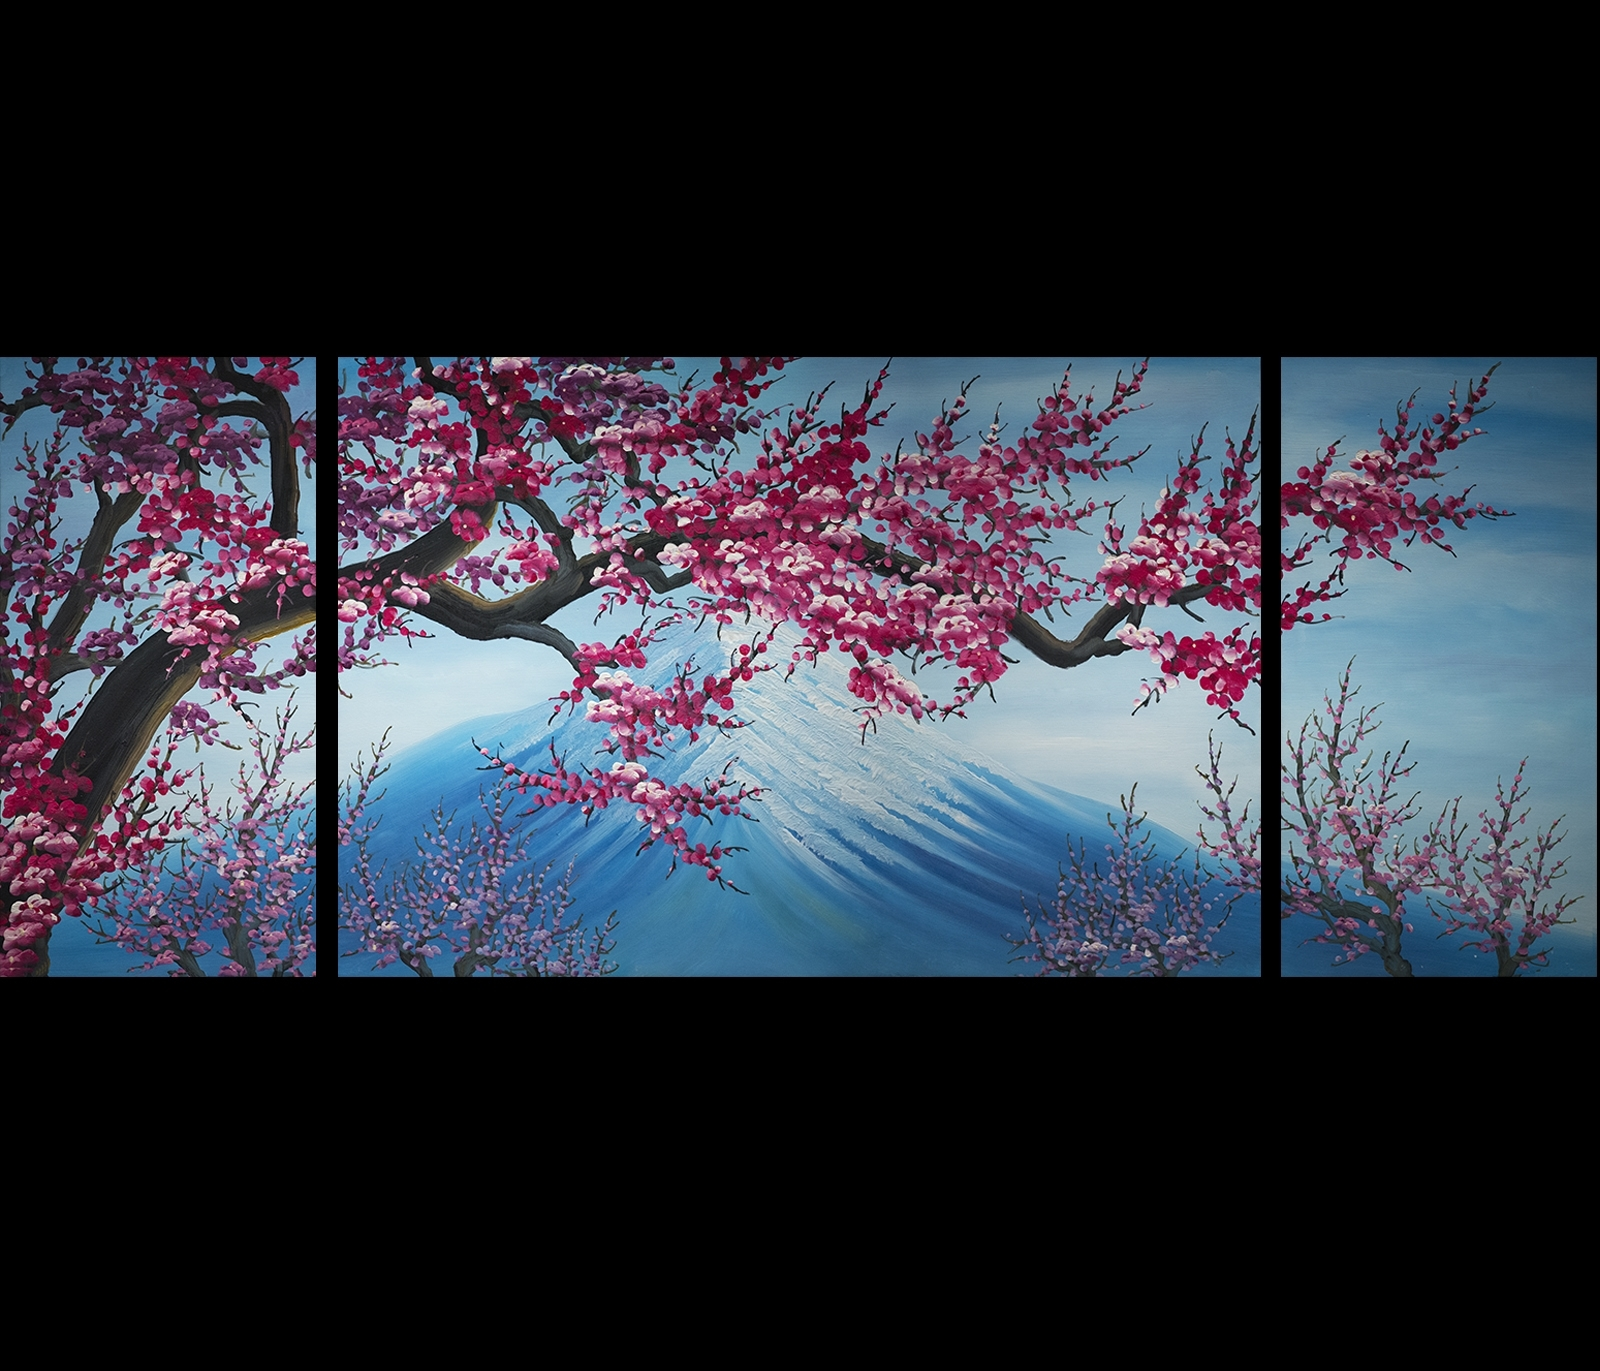 Blossom Canvas Wall Art Modern Abstract Art Home Decor With Regard To Most Recent Abstract Cherry Blossom Wall Art (Gallery 4 of 20)